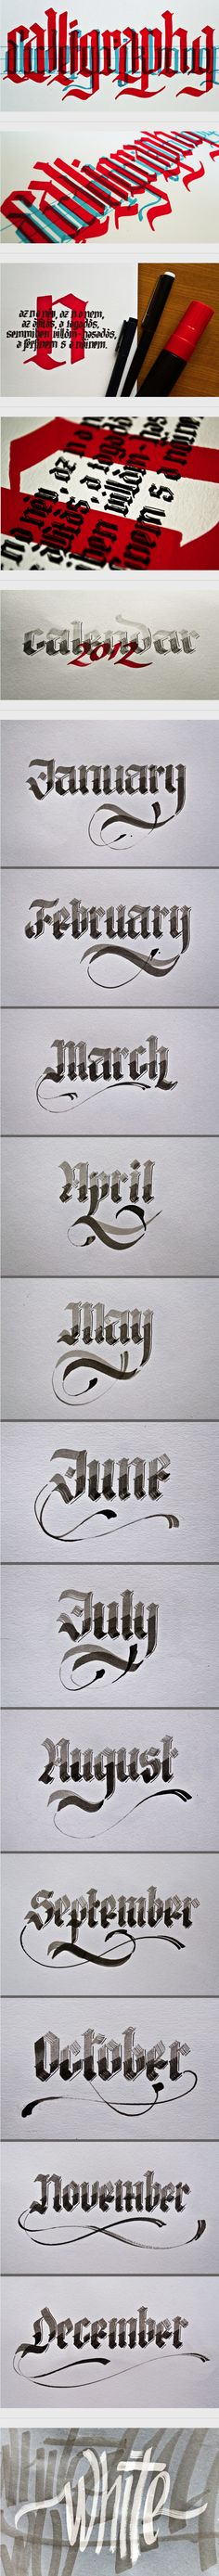 Calligraphy by Renato Molnar, via Behance